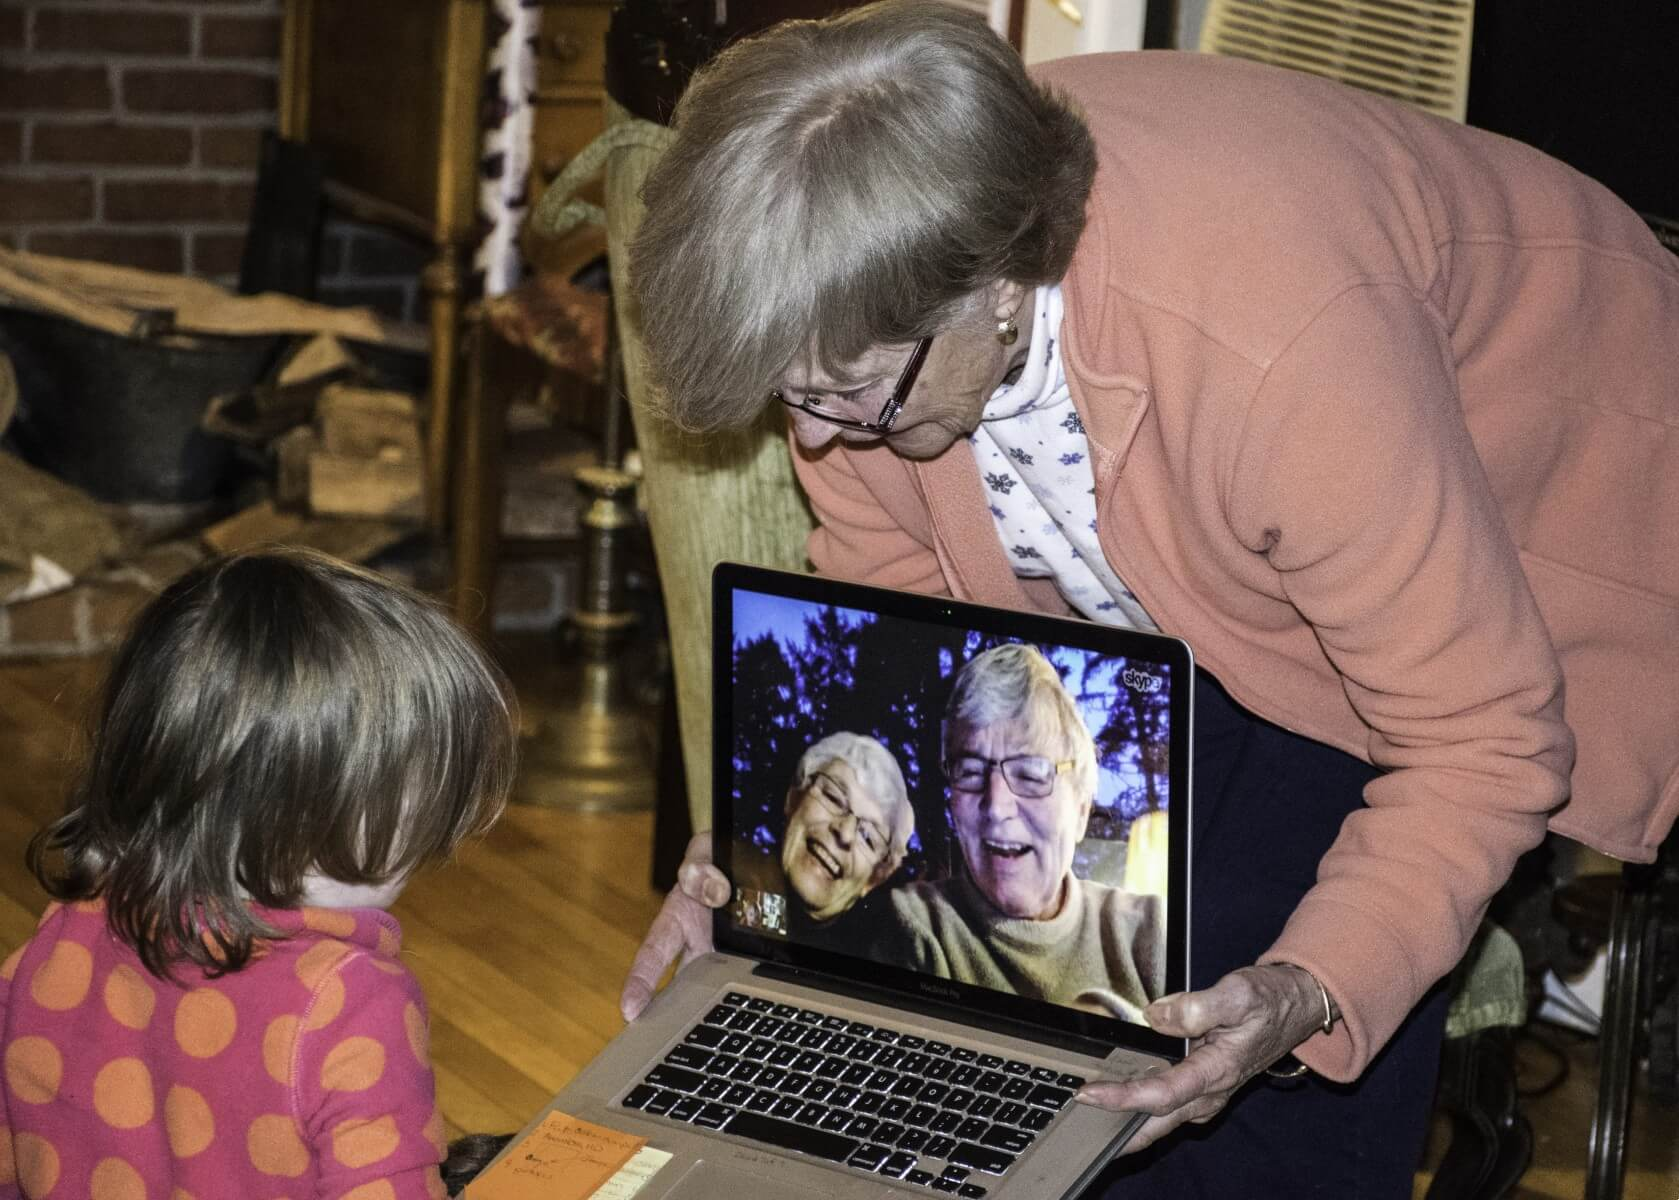 an adult holding a laptop for a child. On the screen are two smiling people in video chat.